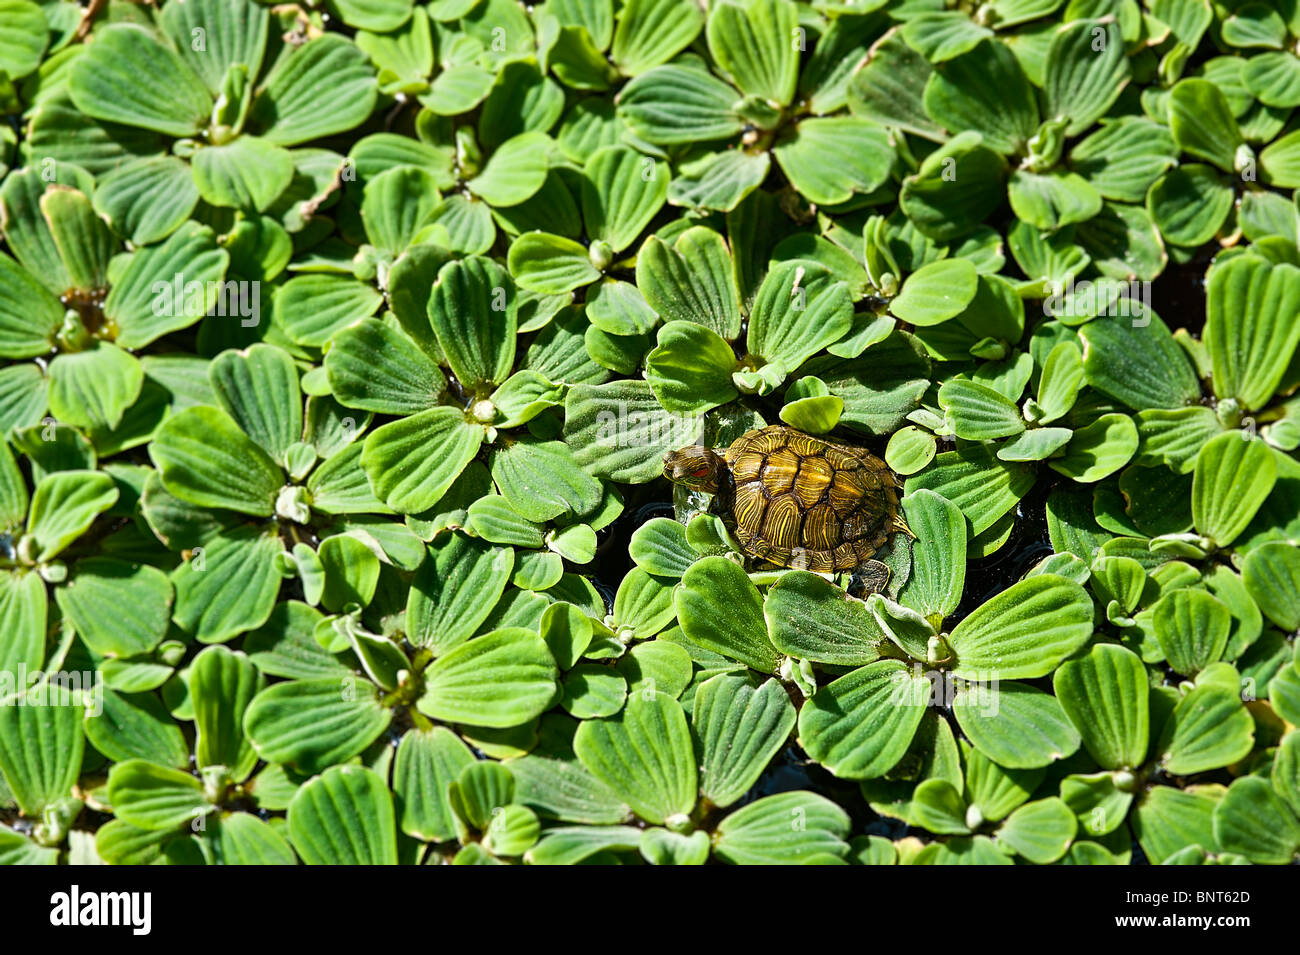 Turtle on water lettuce. - Stock Image